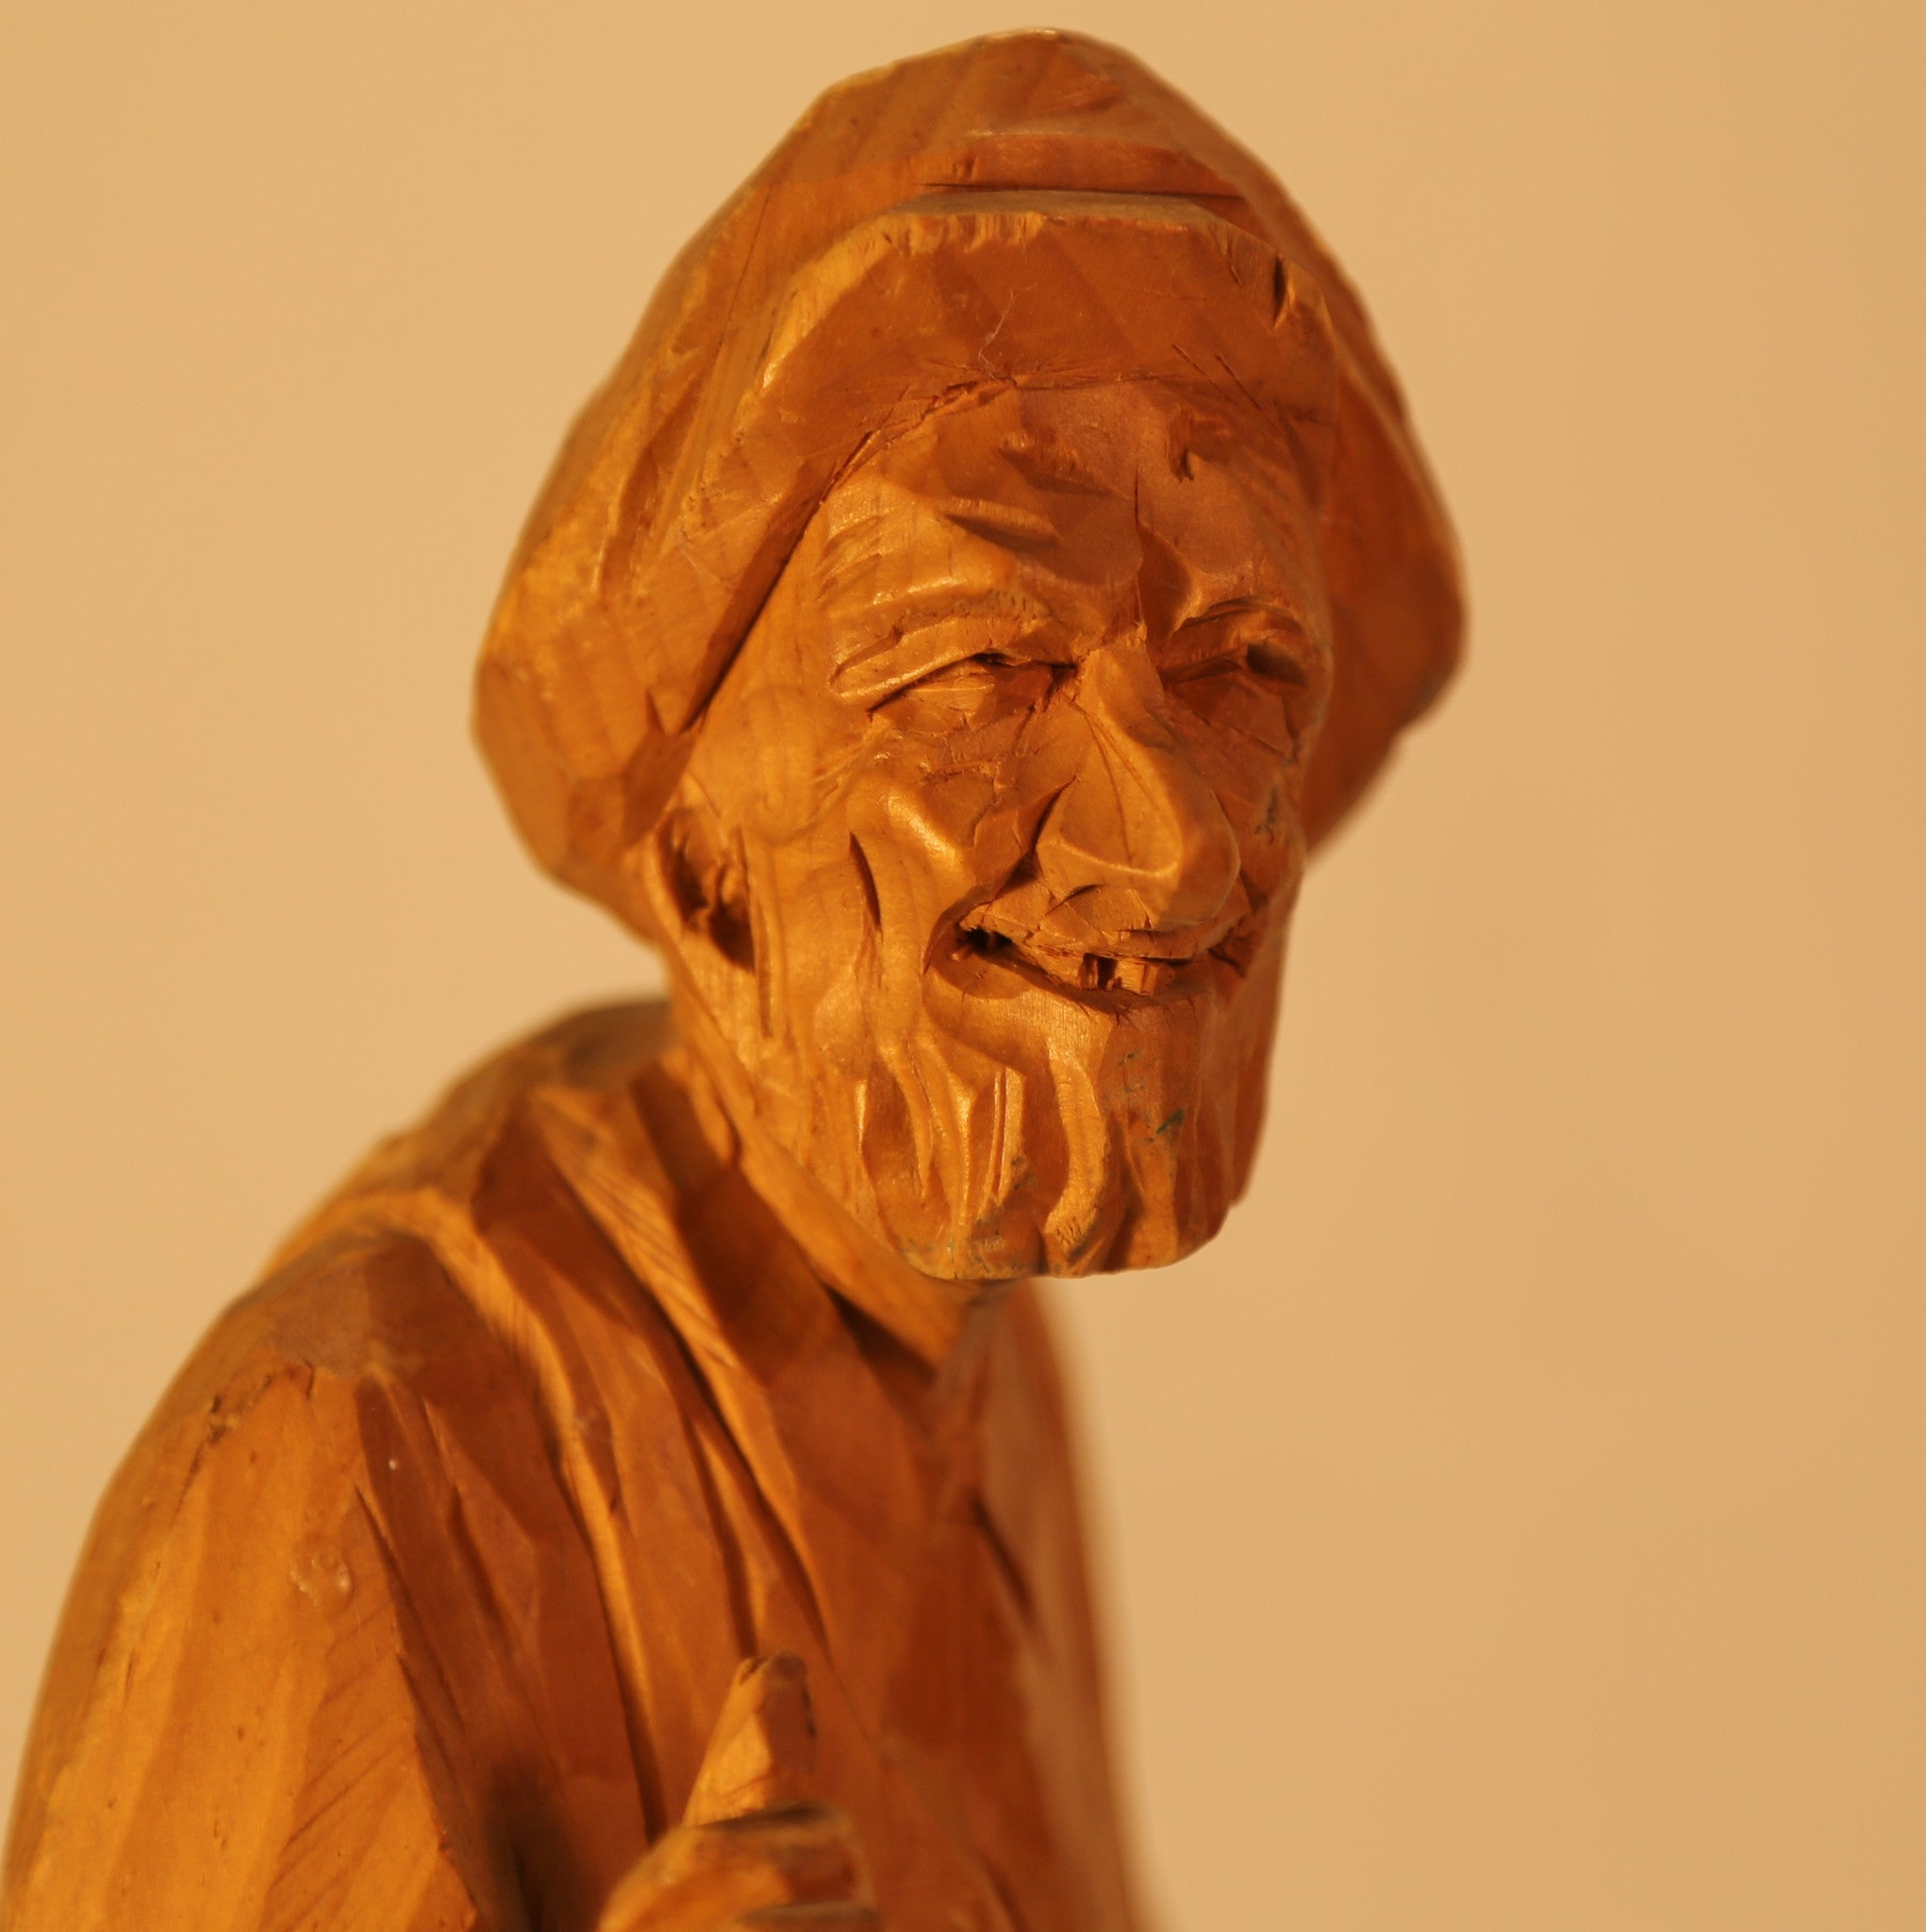 Man wood carving by P.E. Caron